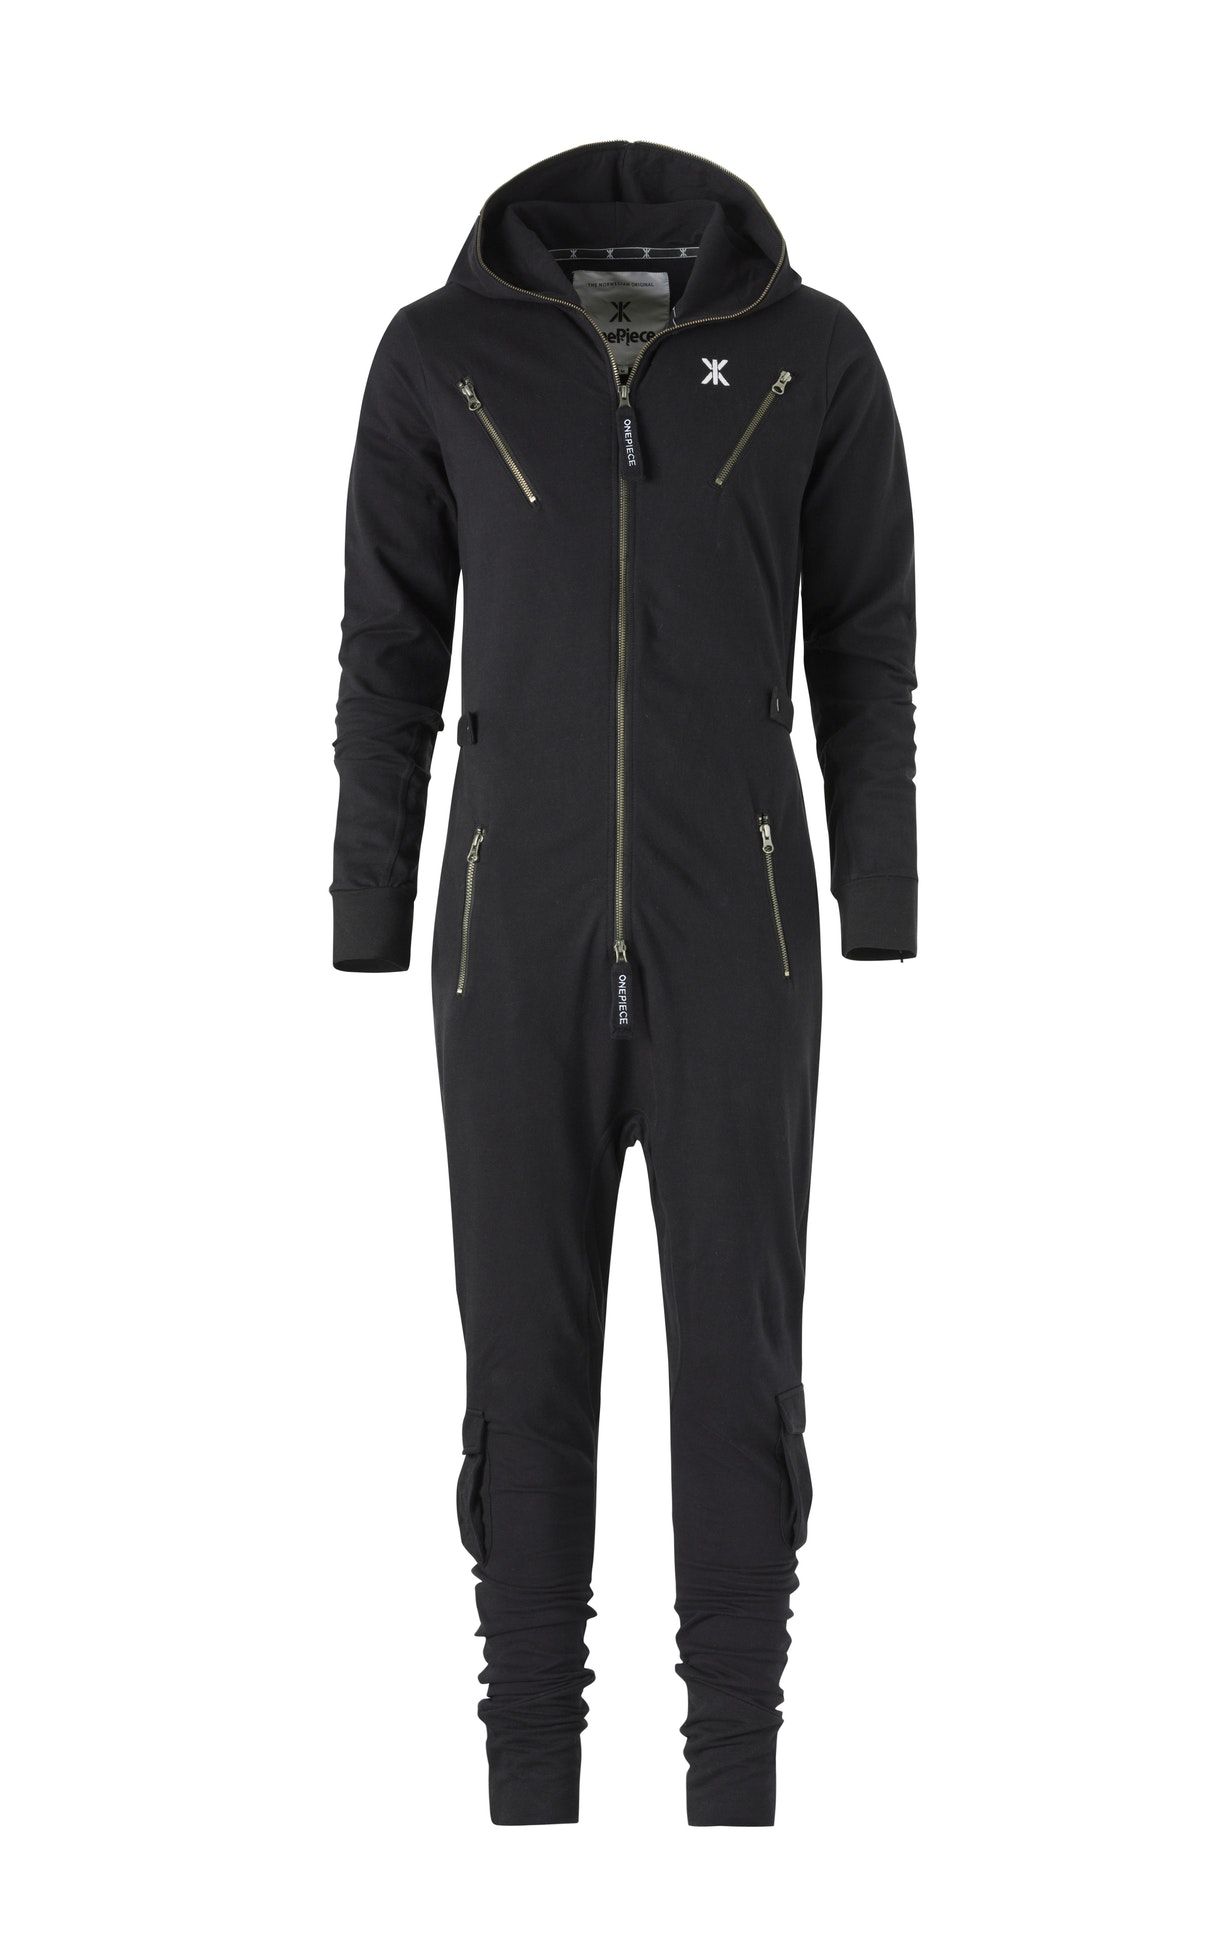 Air Jumpsuit Black Fitted black jumpsuit made from lightweight premium cotton. The jumpsuit has workwear inspired details, with metal zippers, cargo leg pockets and buttoned waist tightener, as well as a slightly dropped crotch.